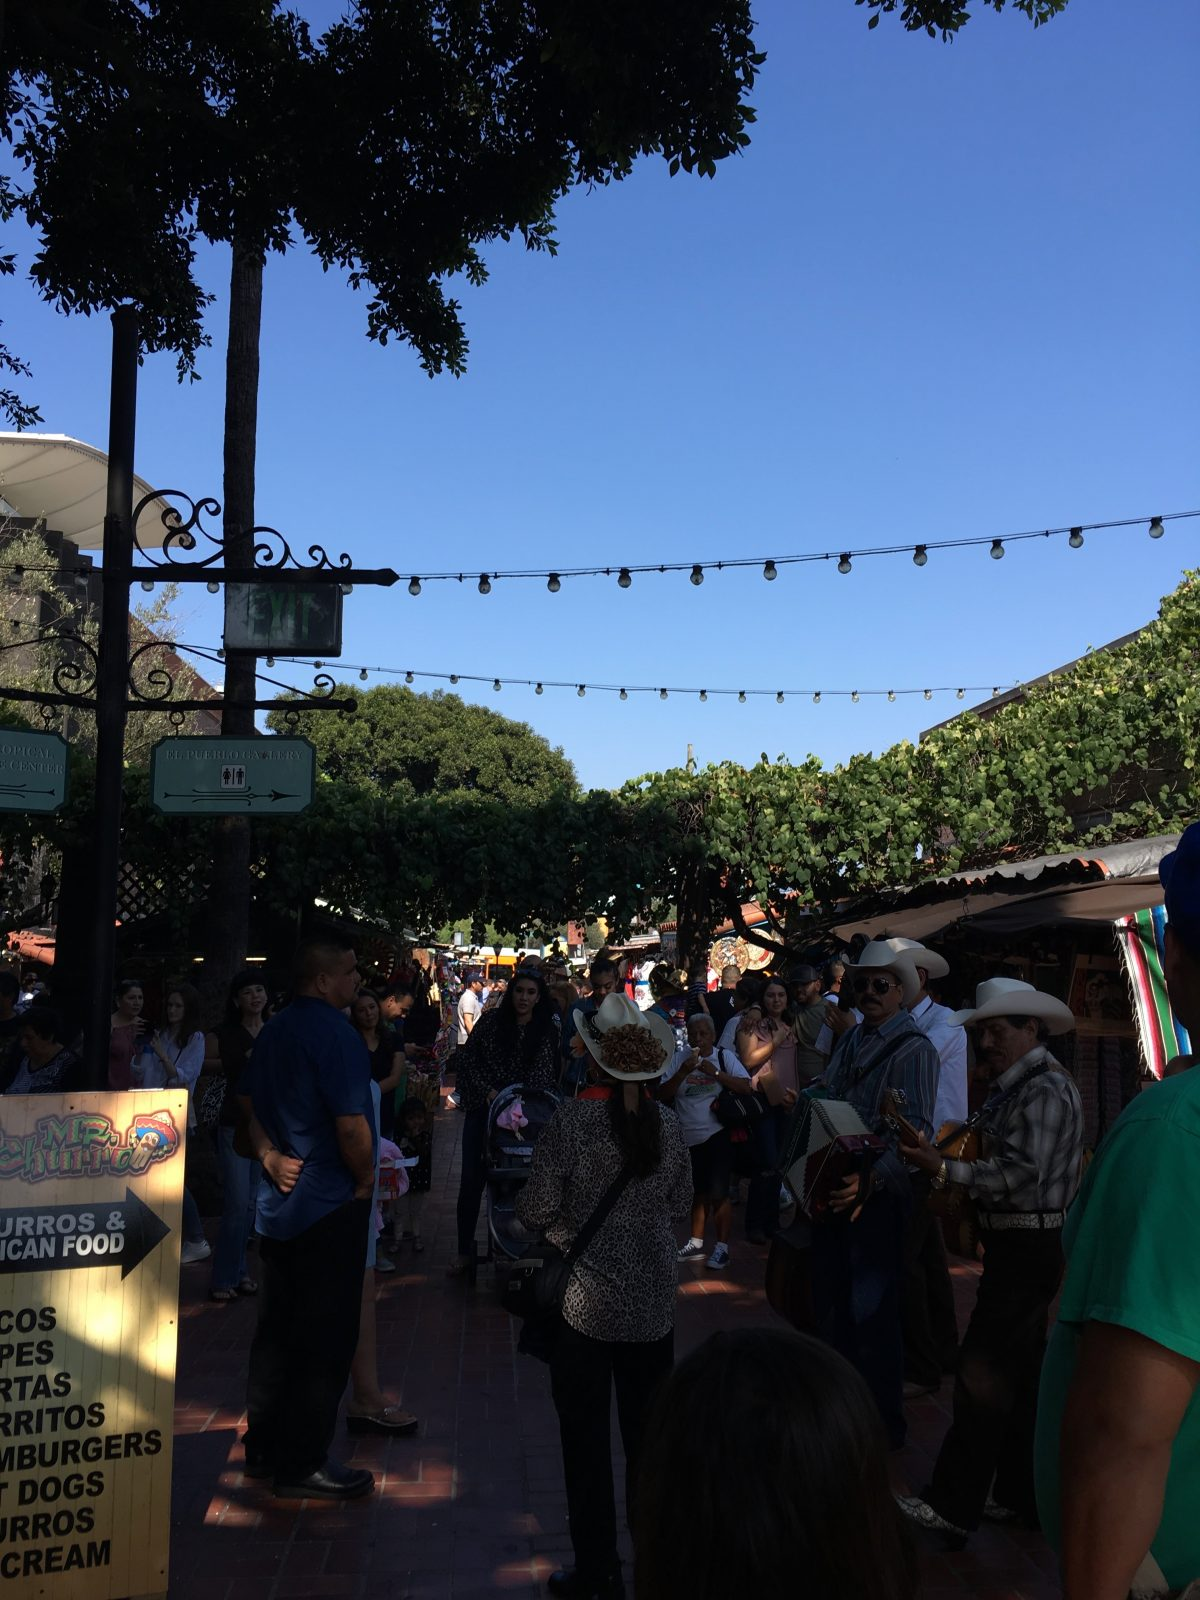 Union Station & Olvera Street